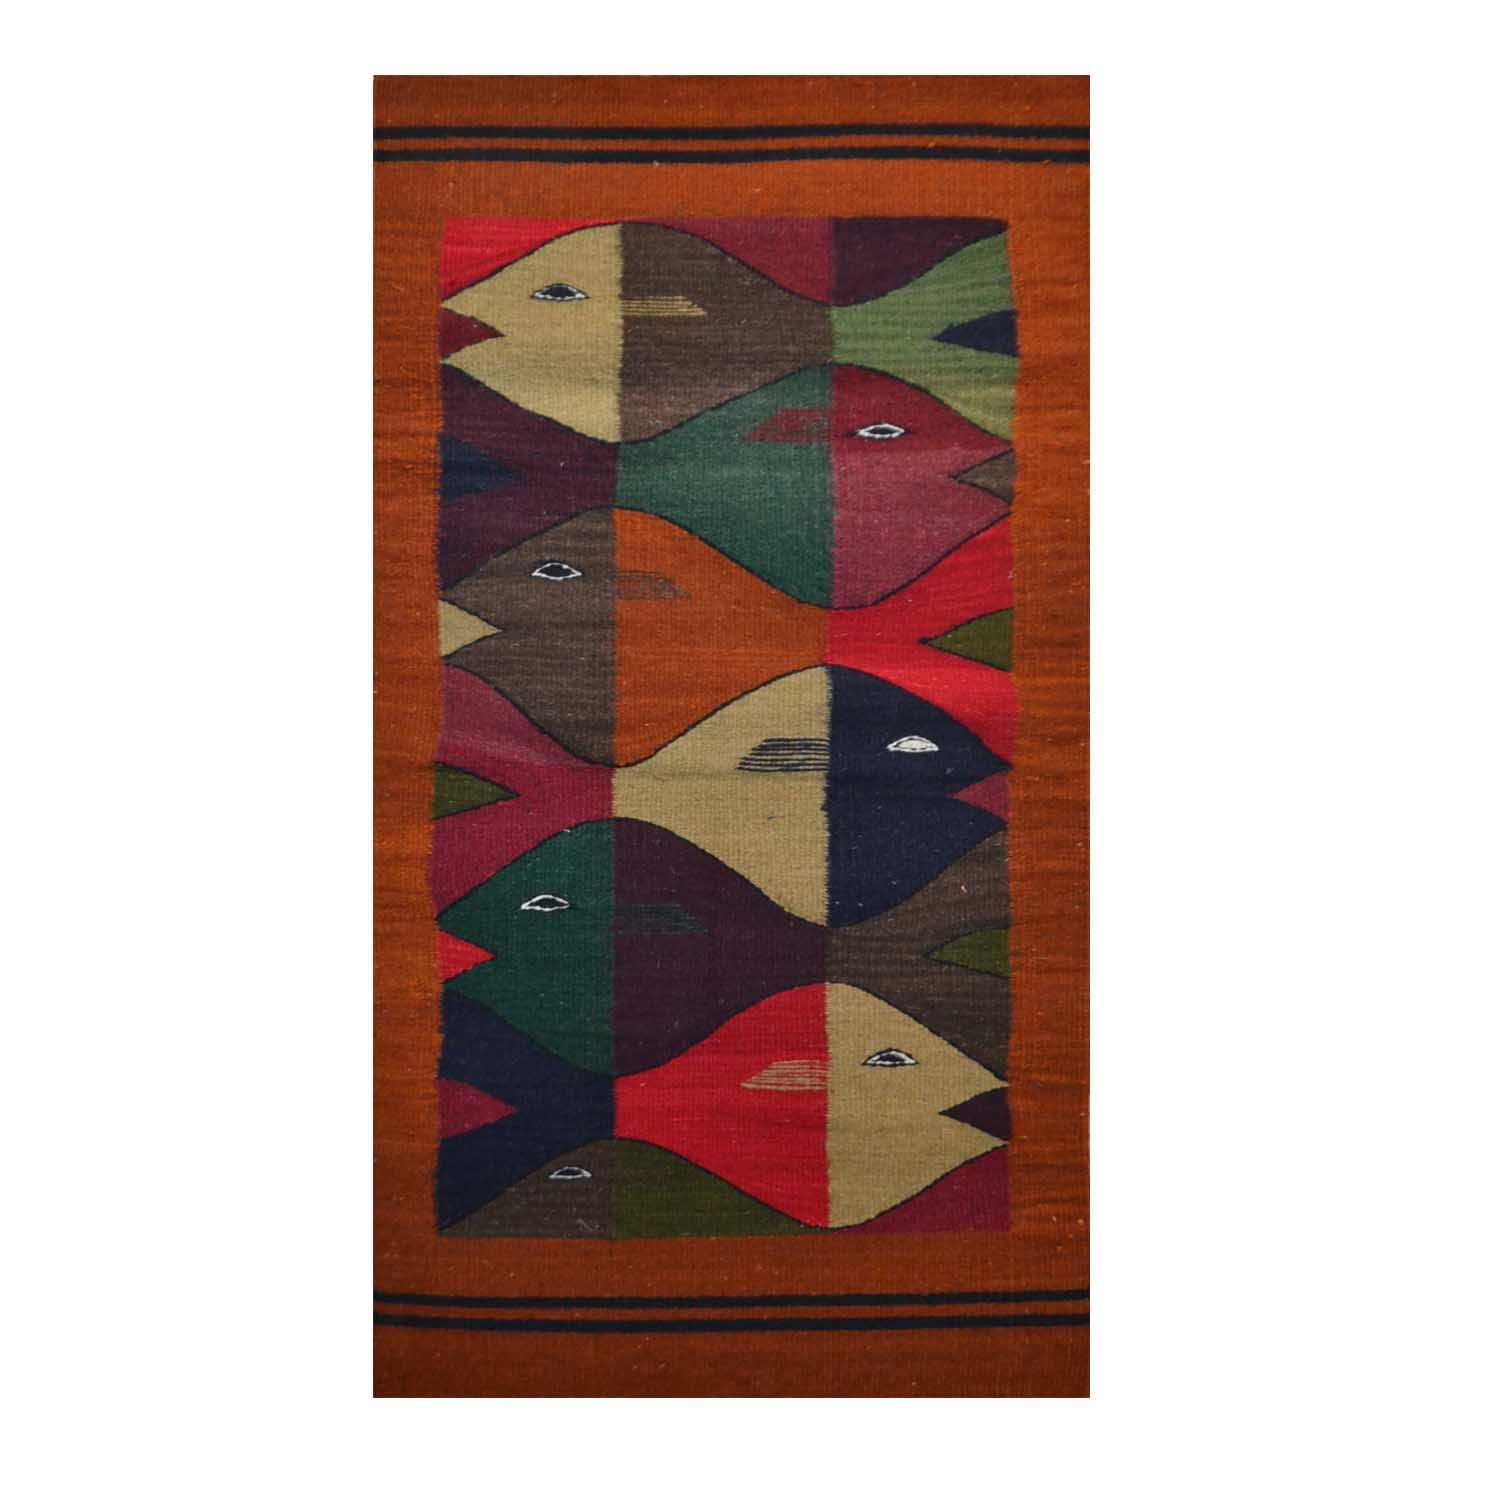 Tapete - Rug - 60 x 120 cms